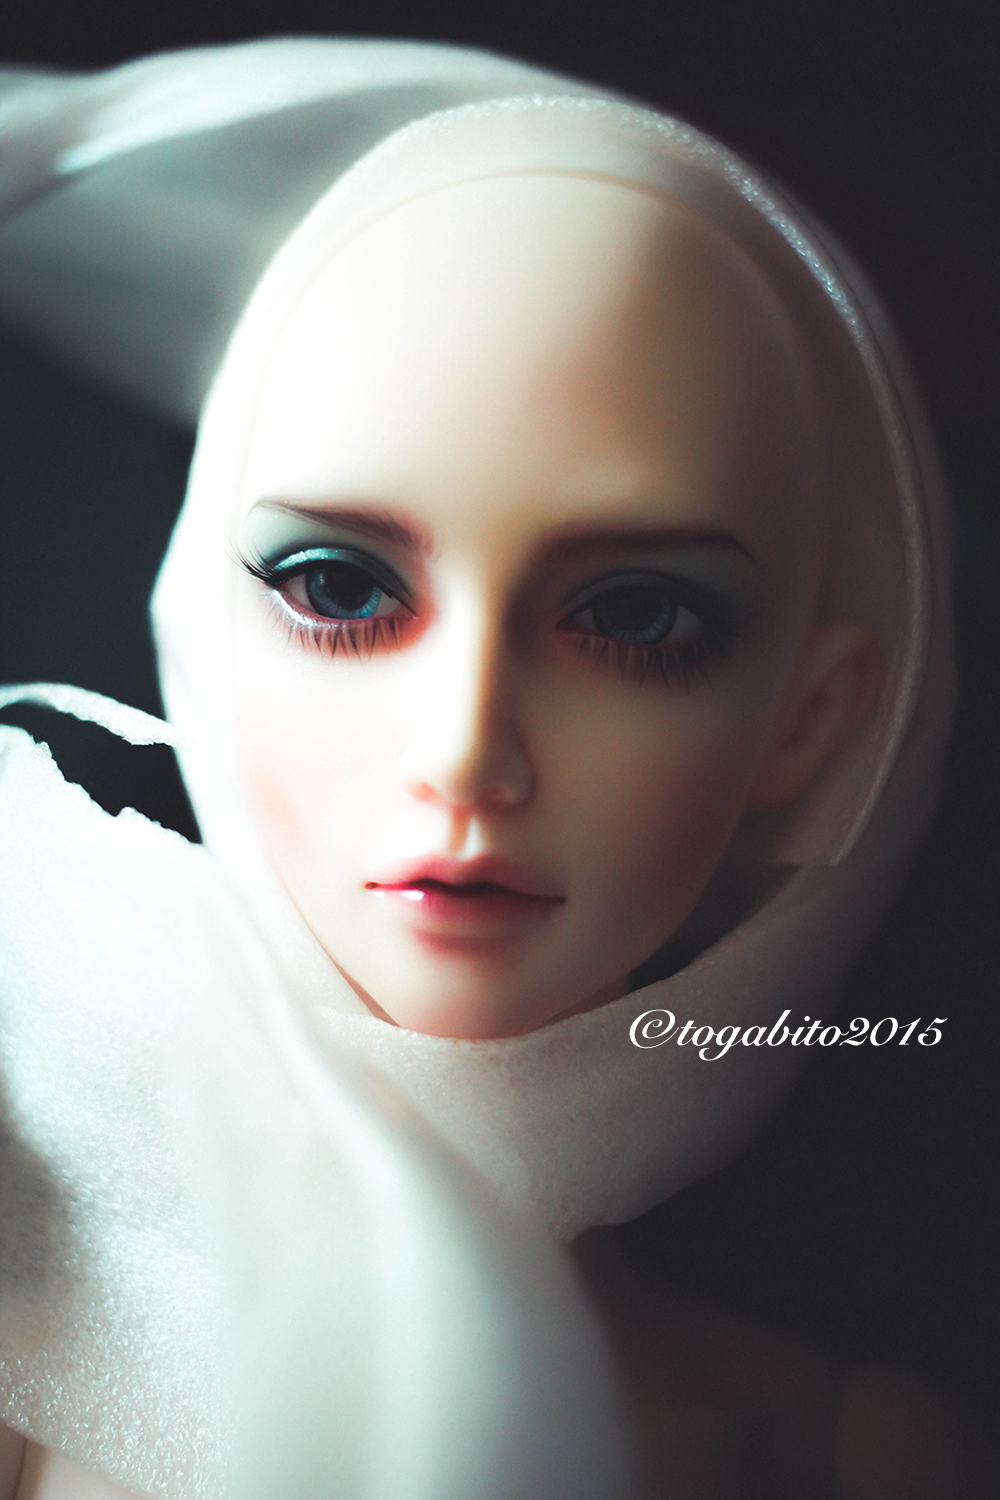 BJD - 1 by phantomofdevil